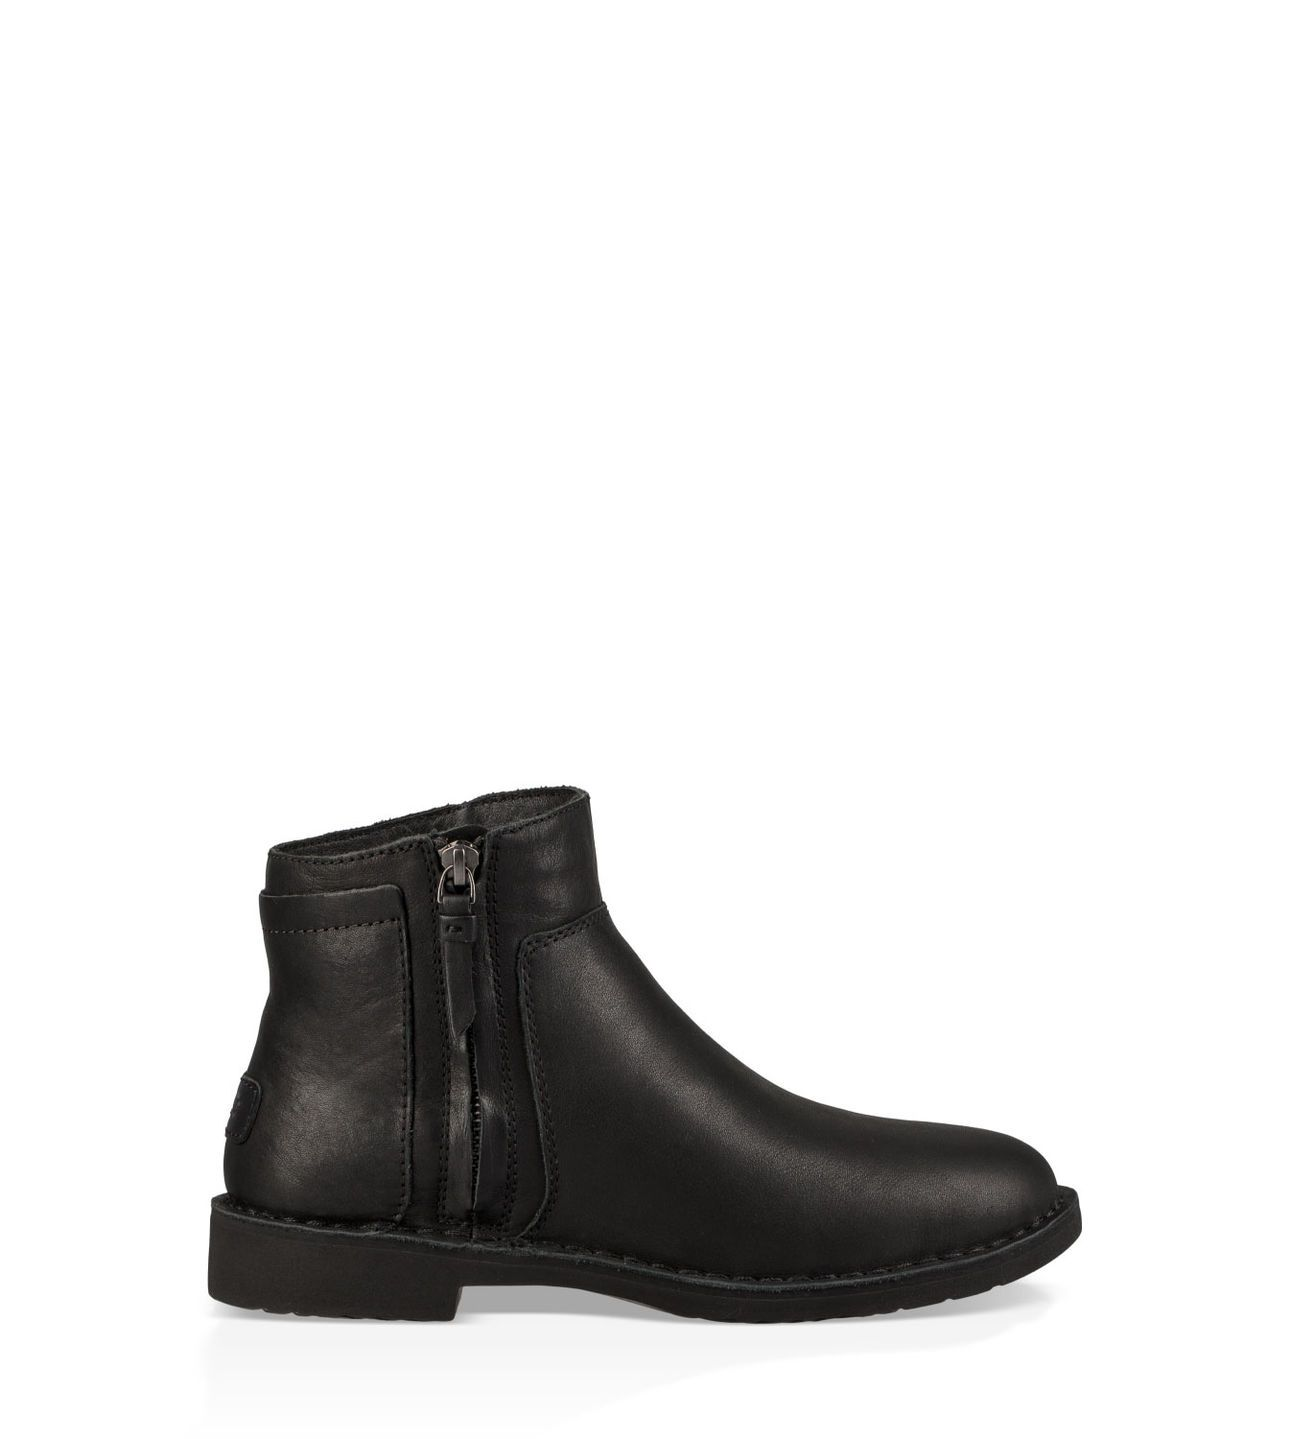 55ebcacdd63 Shop the Women's Rea Leather, part of the Official UGG® Holiday ...